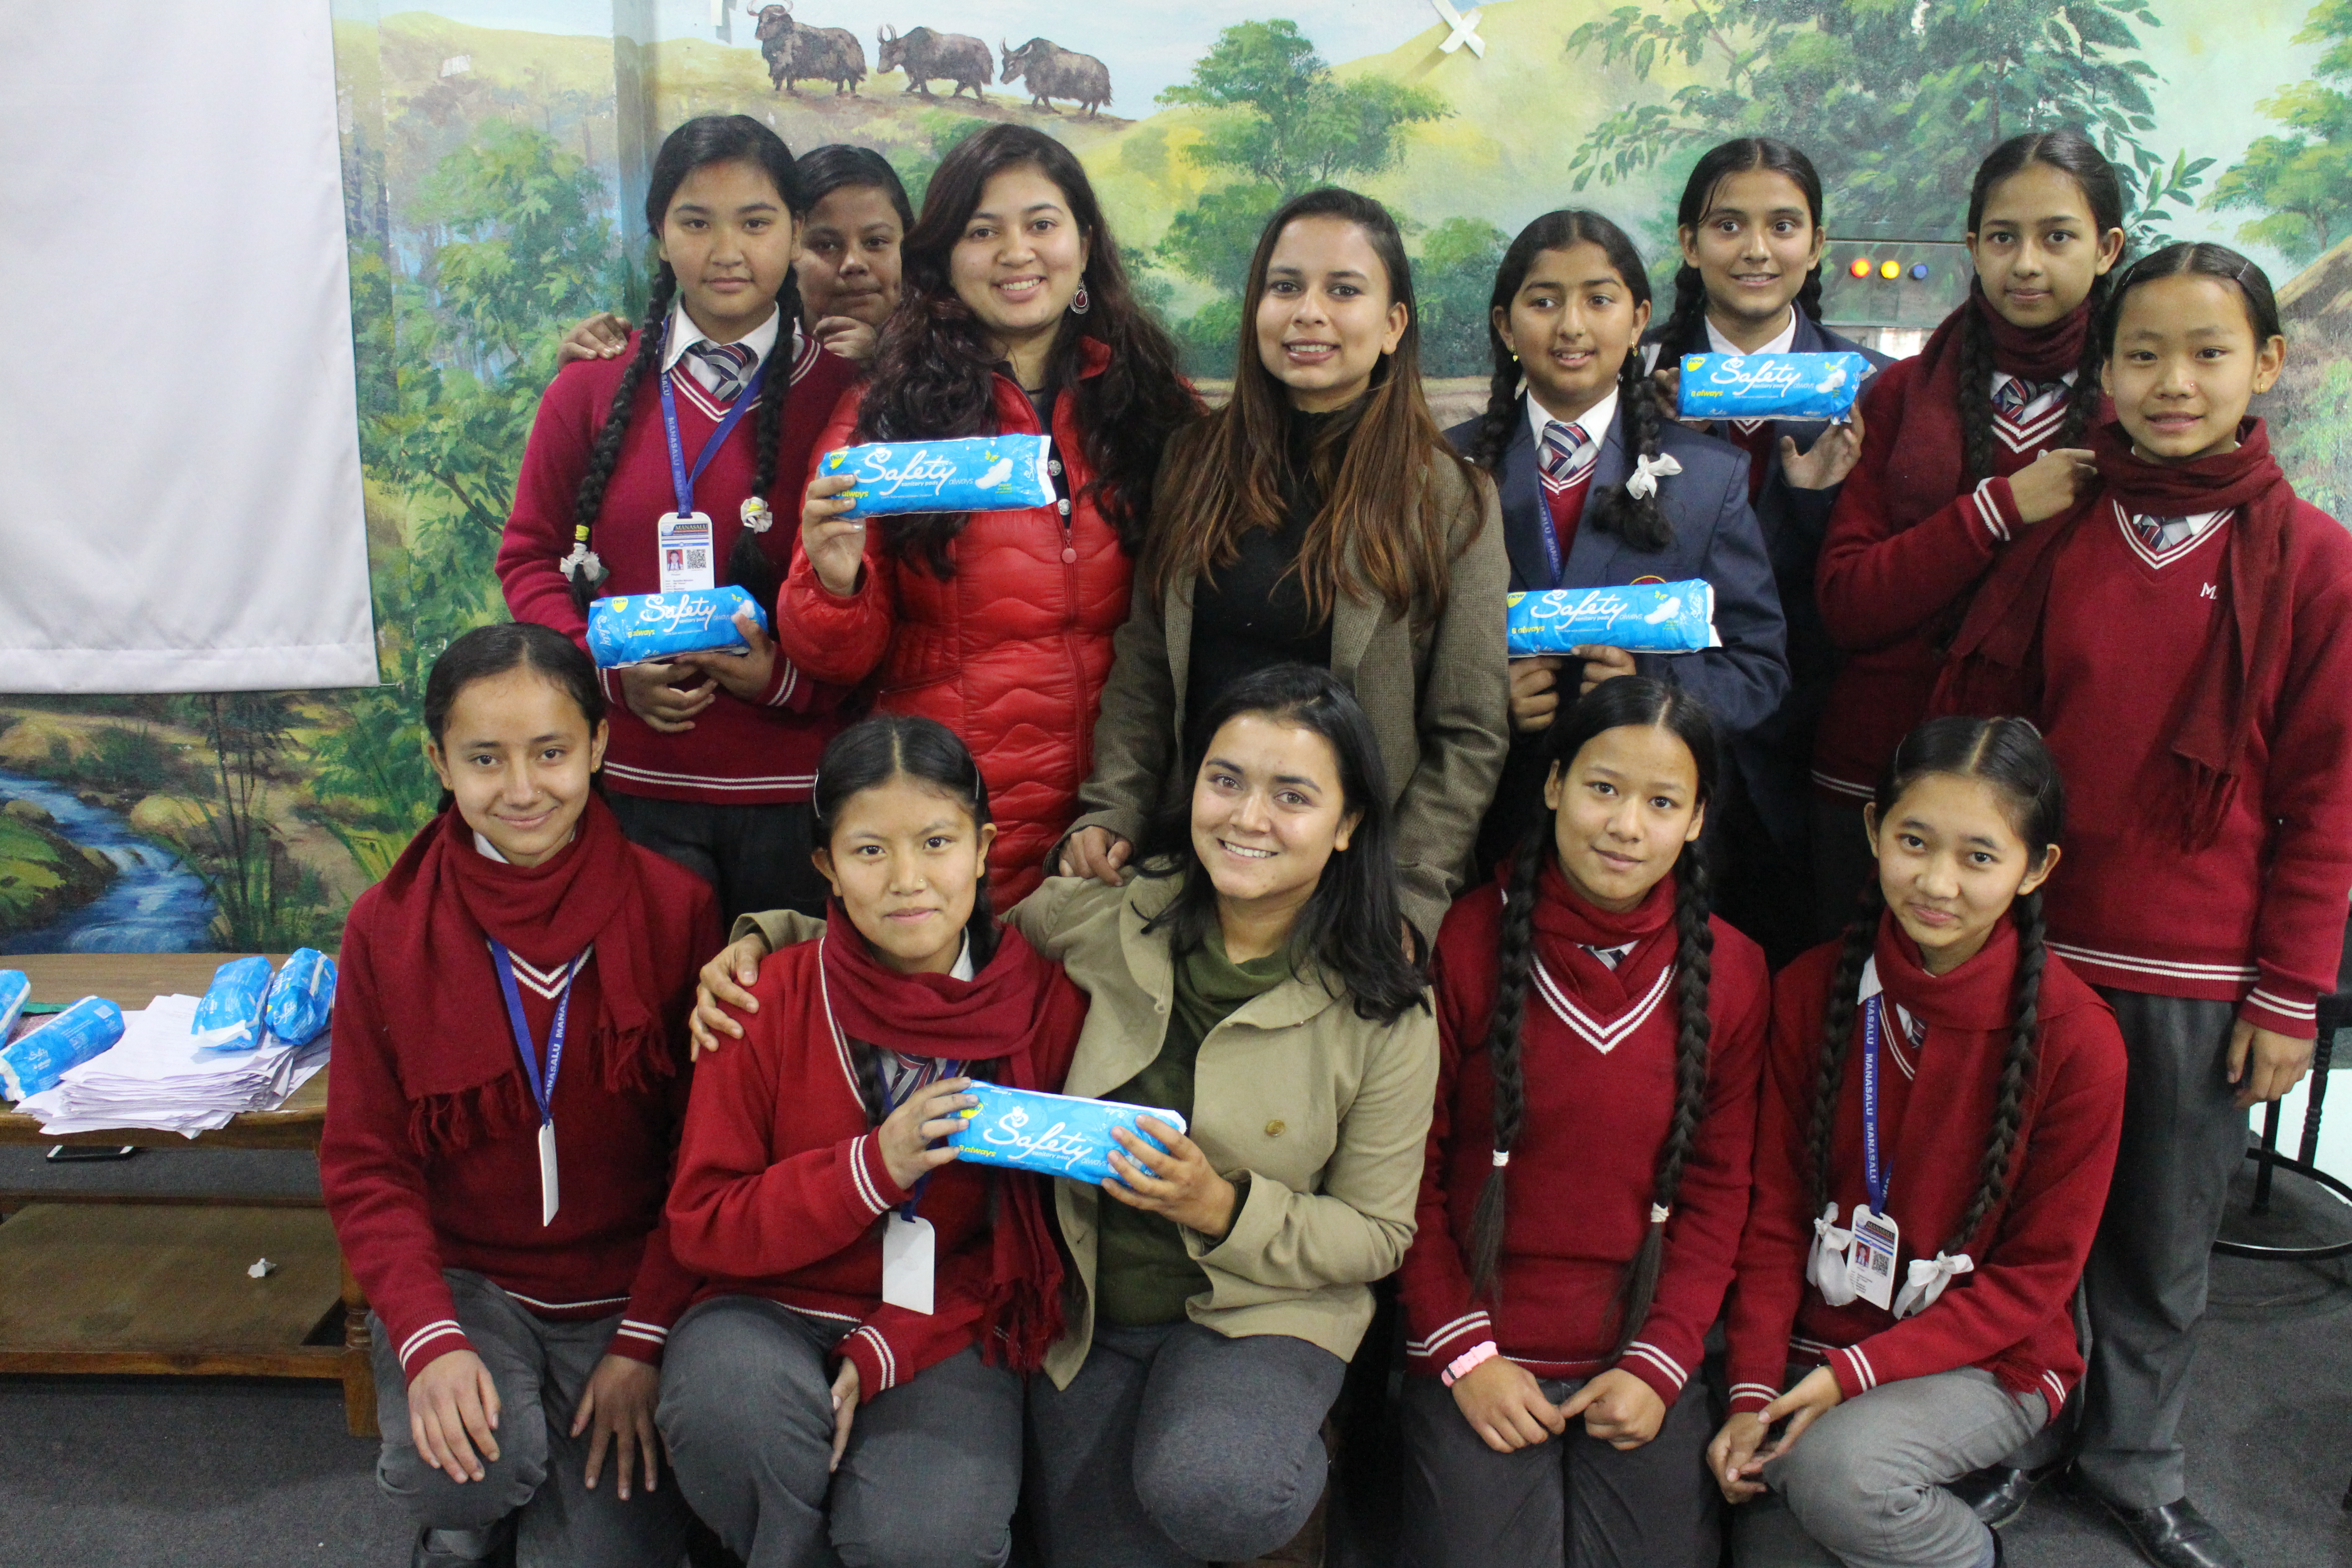 Deepa creates leadership workshops for students across Nepal